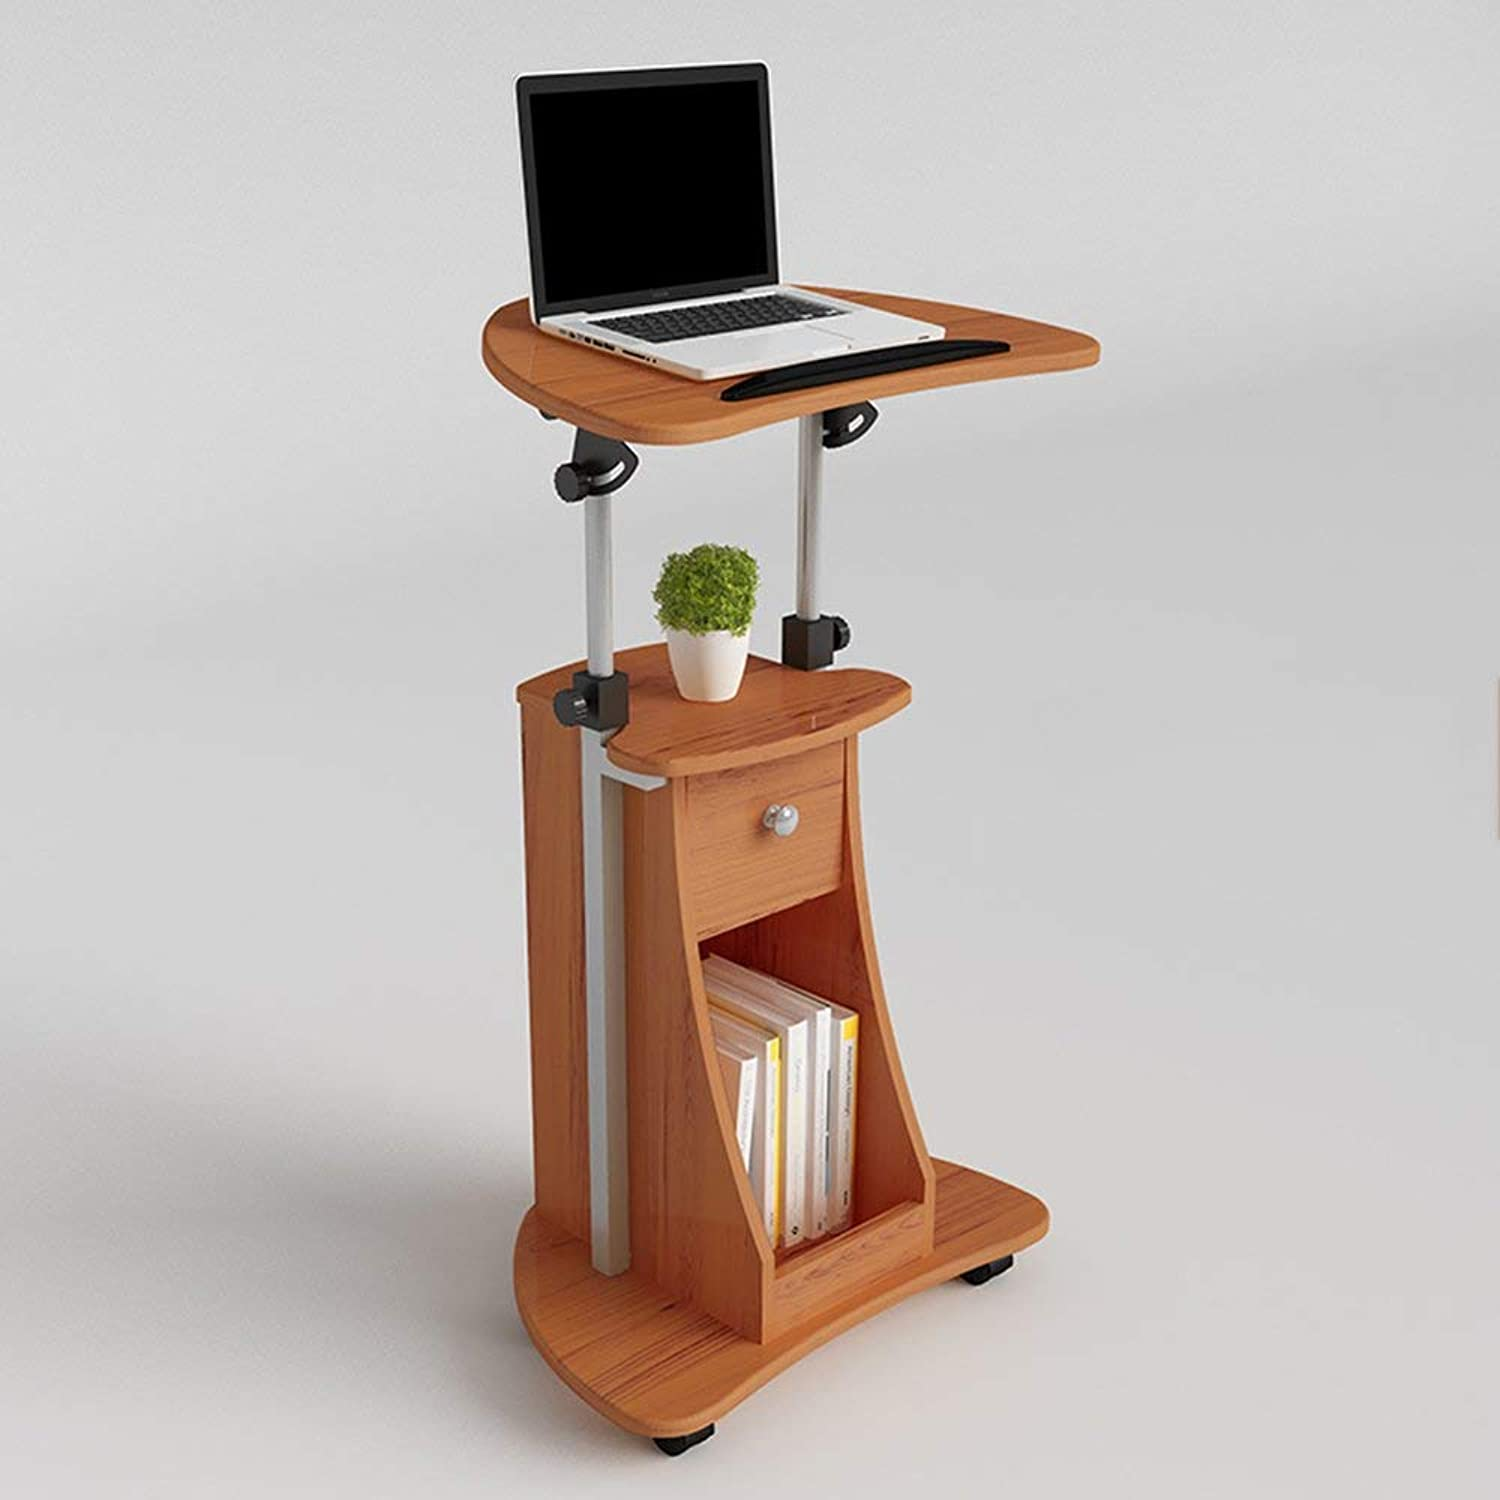 GUI Lazy Table Tables Mobile Desk Adjustable Height Laptop Household Lifting Folding Computer Desk Simple and Small Workbench Meeting Modern StandUp Desk Release The Spine Removable Laptop Desk